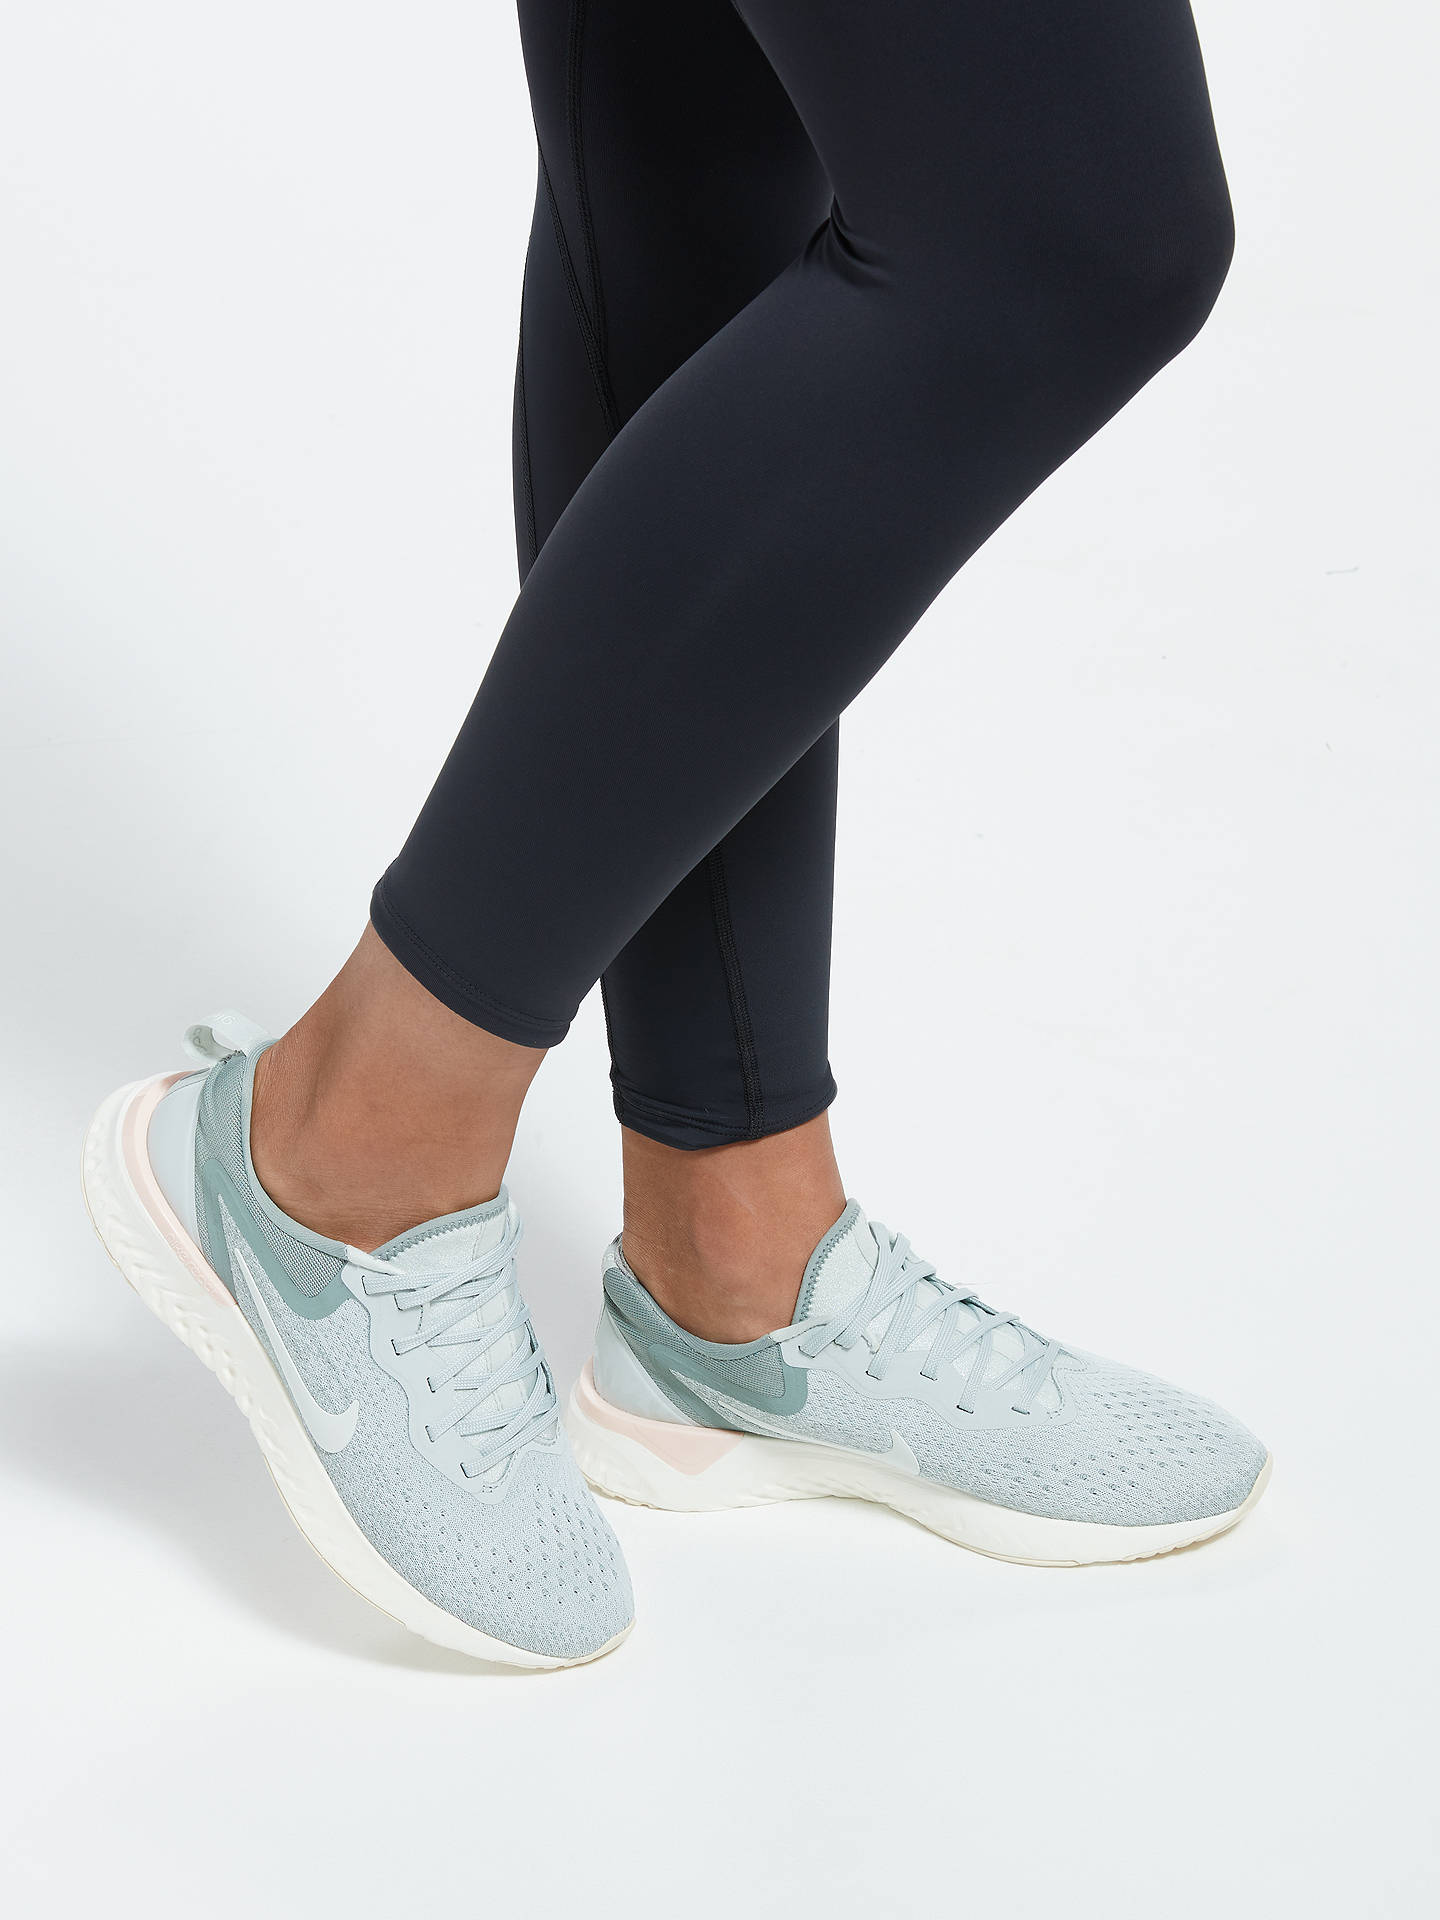 wholesale dealer 6ca49 3bd3a ... Buy Nike Odyssey React Women s Running Shoe, Light Silver Sail, 4  Online at ...